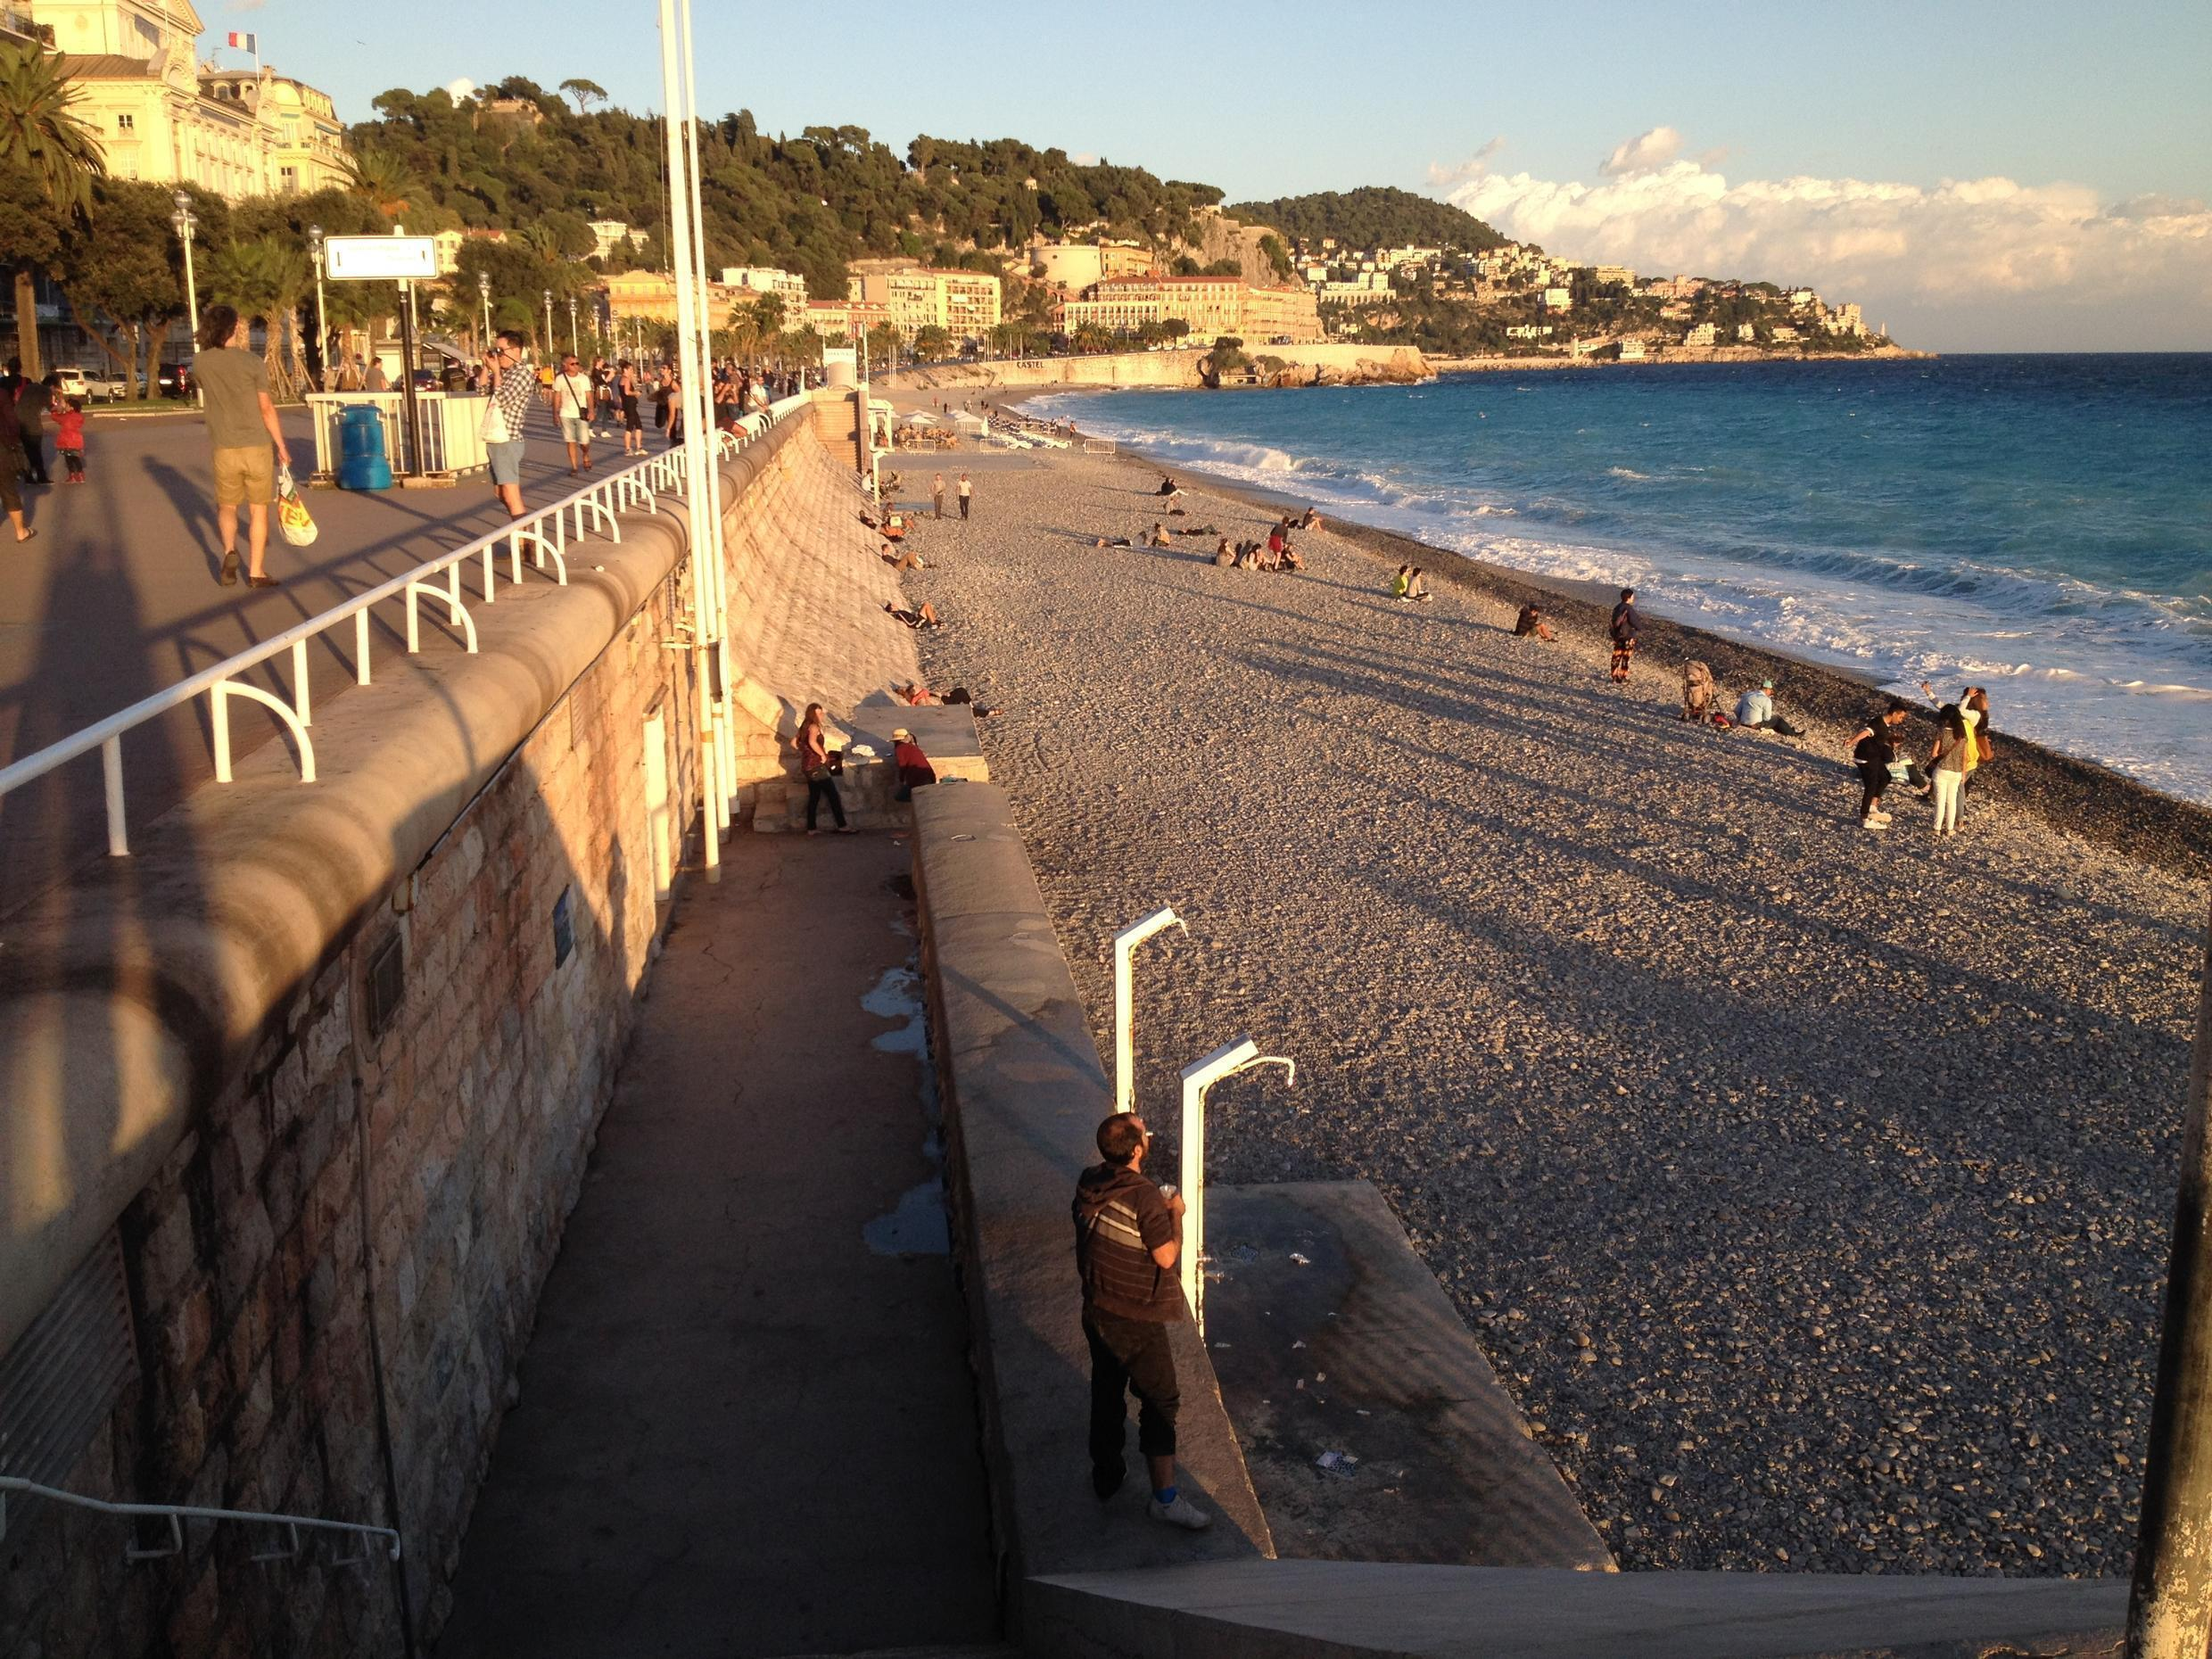 International visitor arrivals in Nice dropped by 9.4 per cent in the days following the attack in Nice.